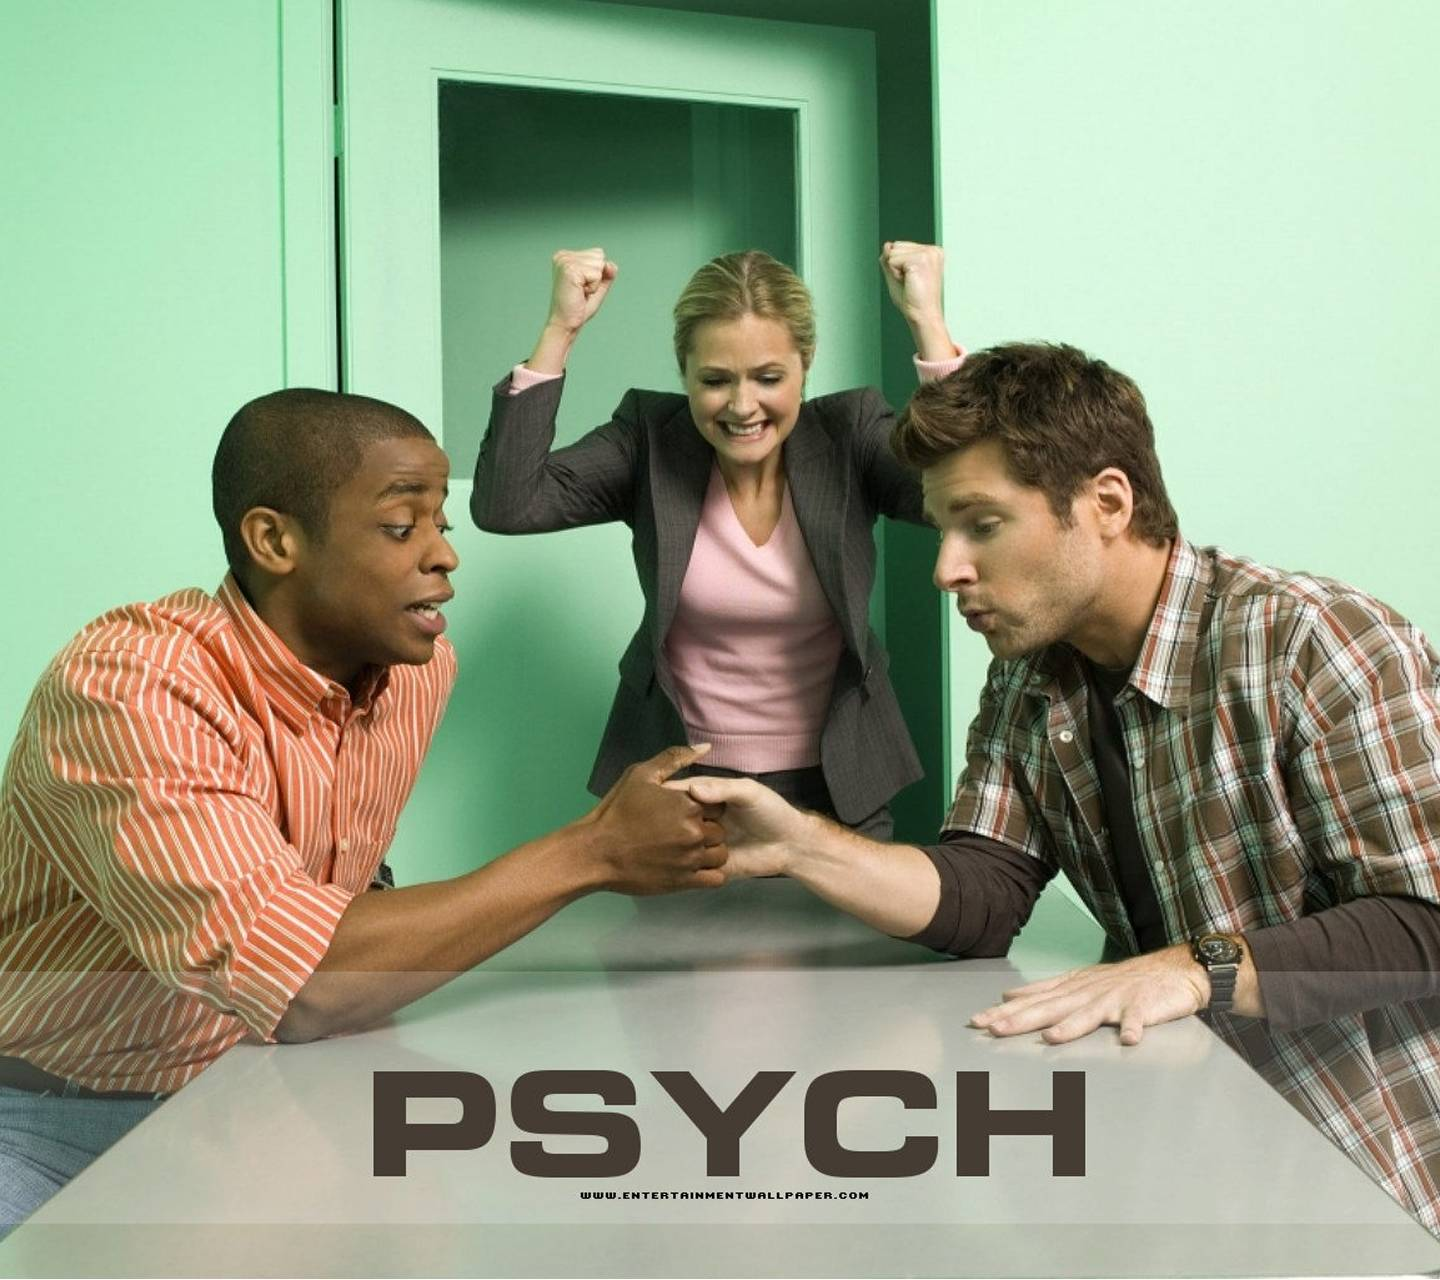 Psych Wallpaper Hd 2